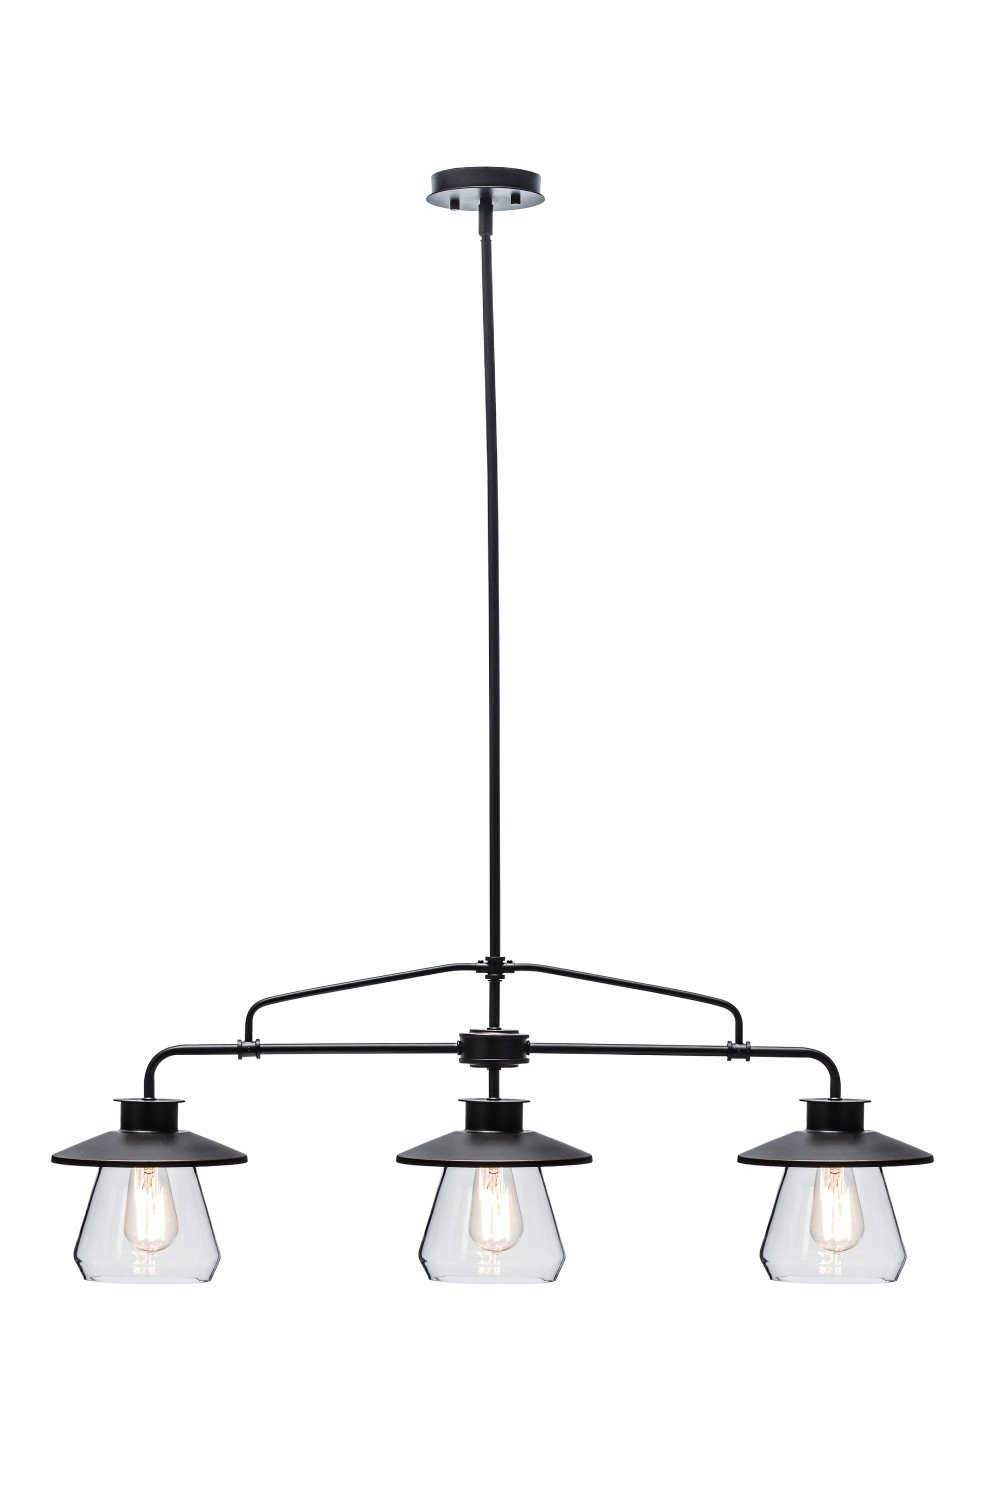 Globe Electric 64845 Nate 3 Light Pendant Bronze Oil Rubbed Finish Fixture Wiring As Well A Wires Besides Electrical Clear Glass Shades